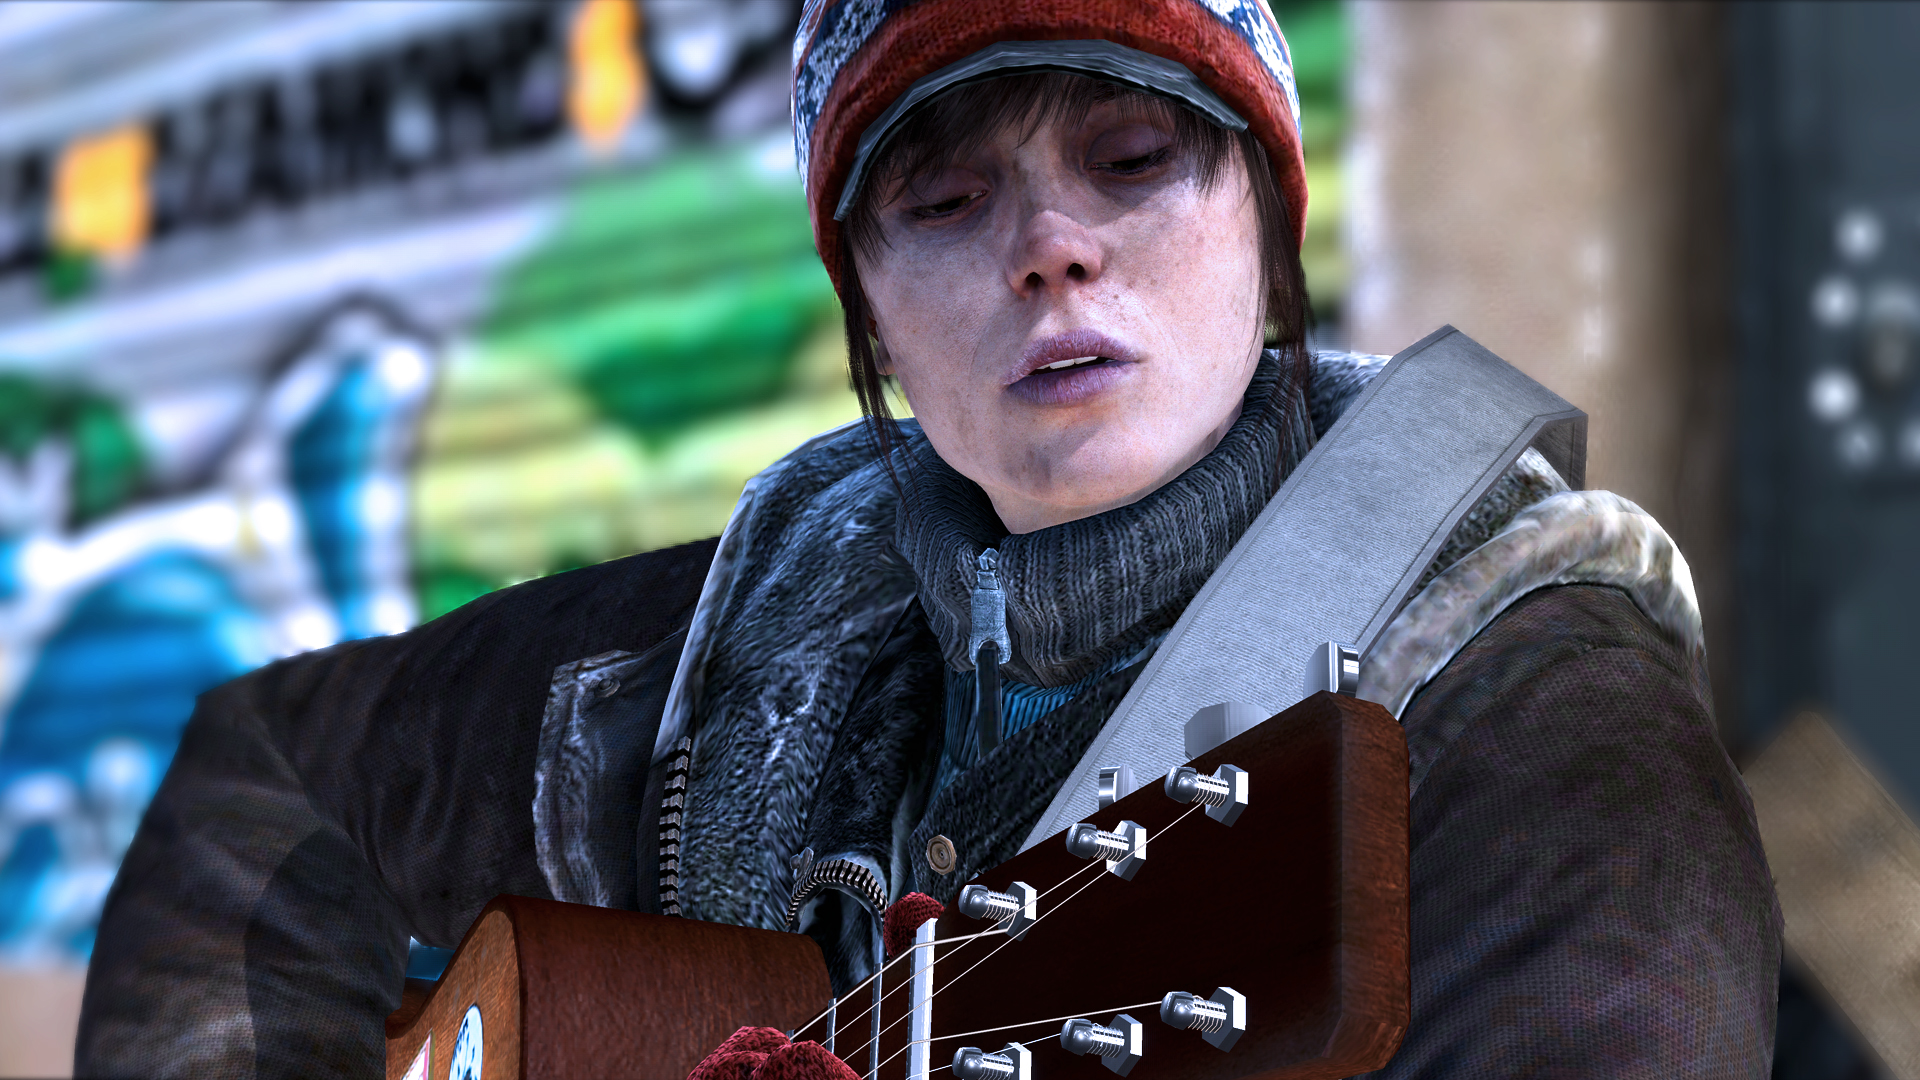 Beyond-Two-Souls-jodie-holmes-play-guitar